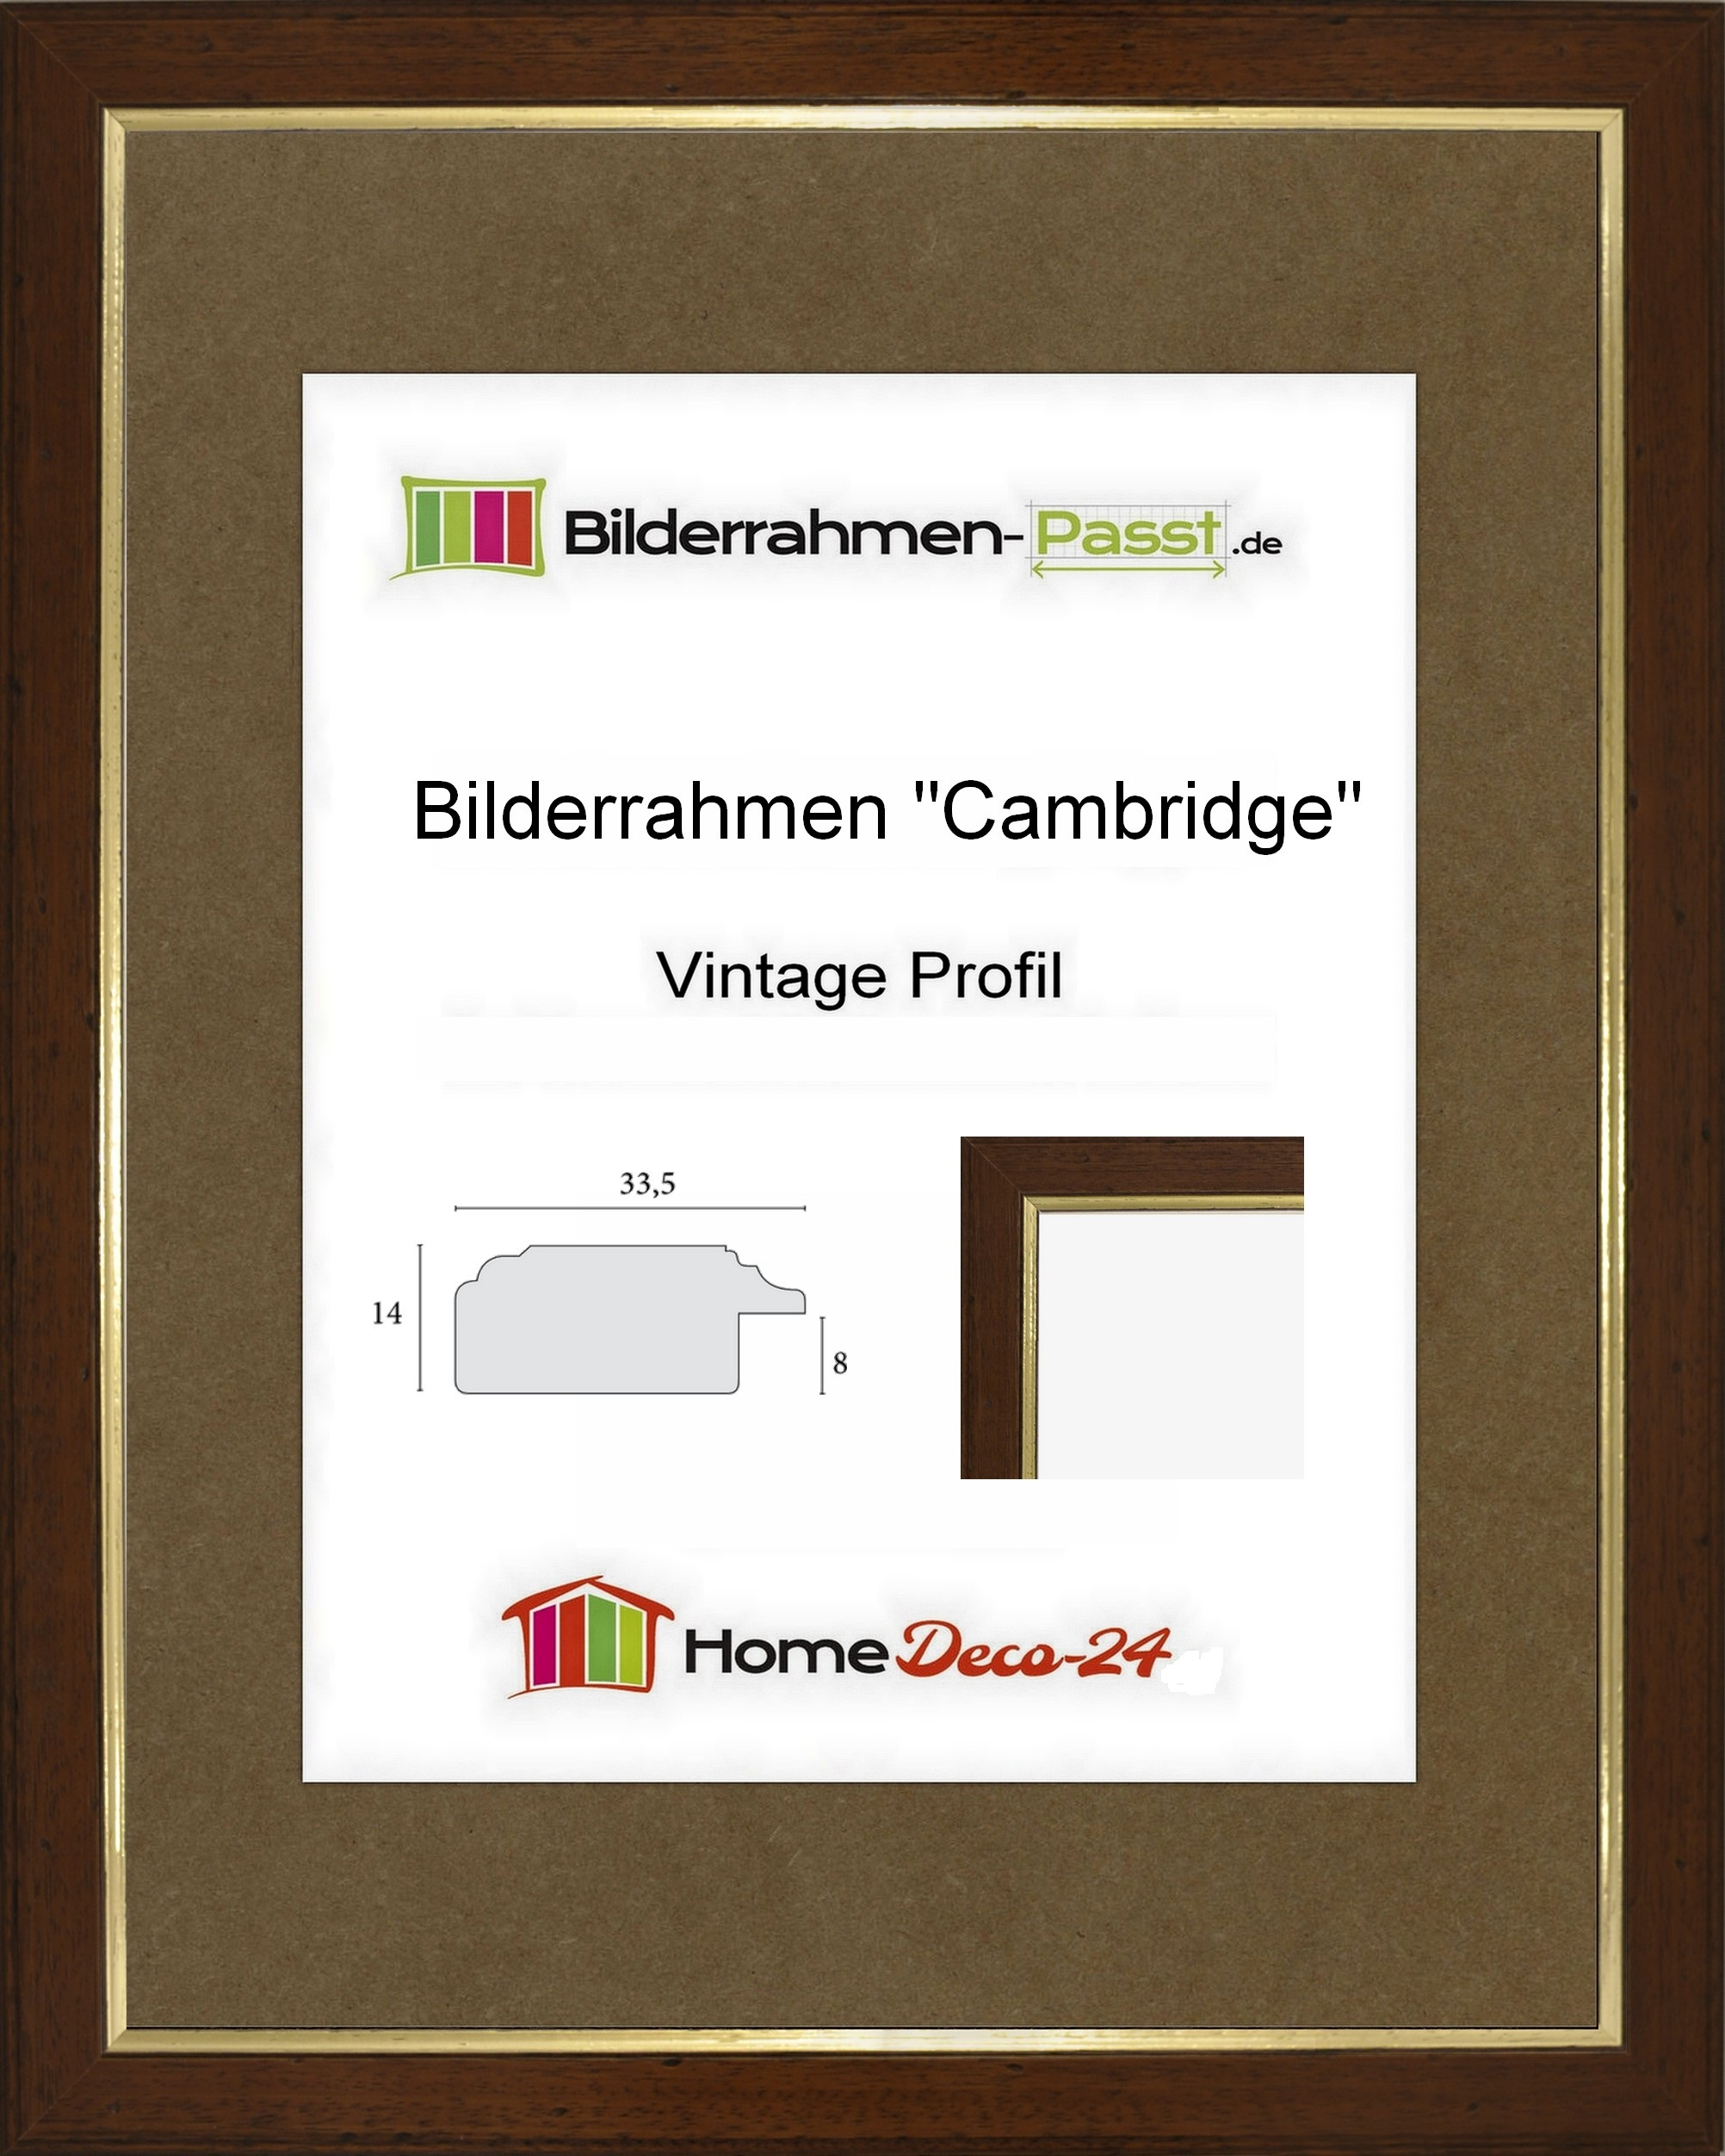 cambridge 73 x 87 cm vintage massivholz bilderrahmen nussbraun antik 87 73. Black Bedroom Furniture Sets. Home Design Ideas